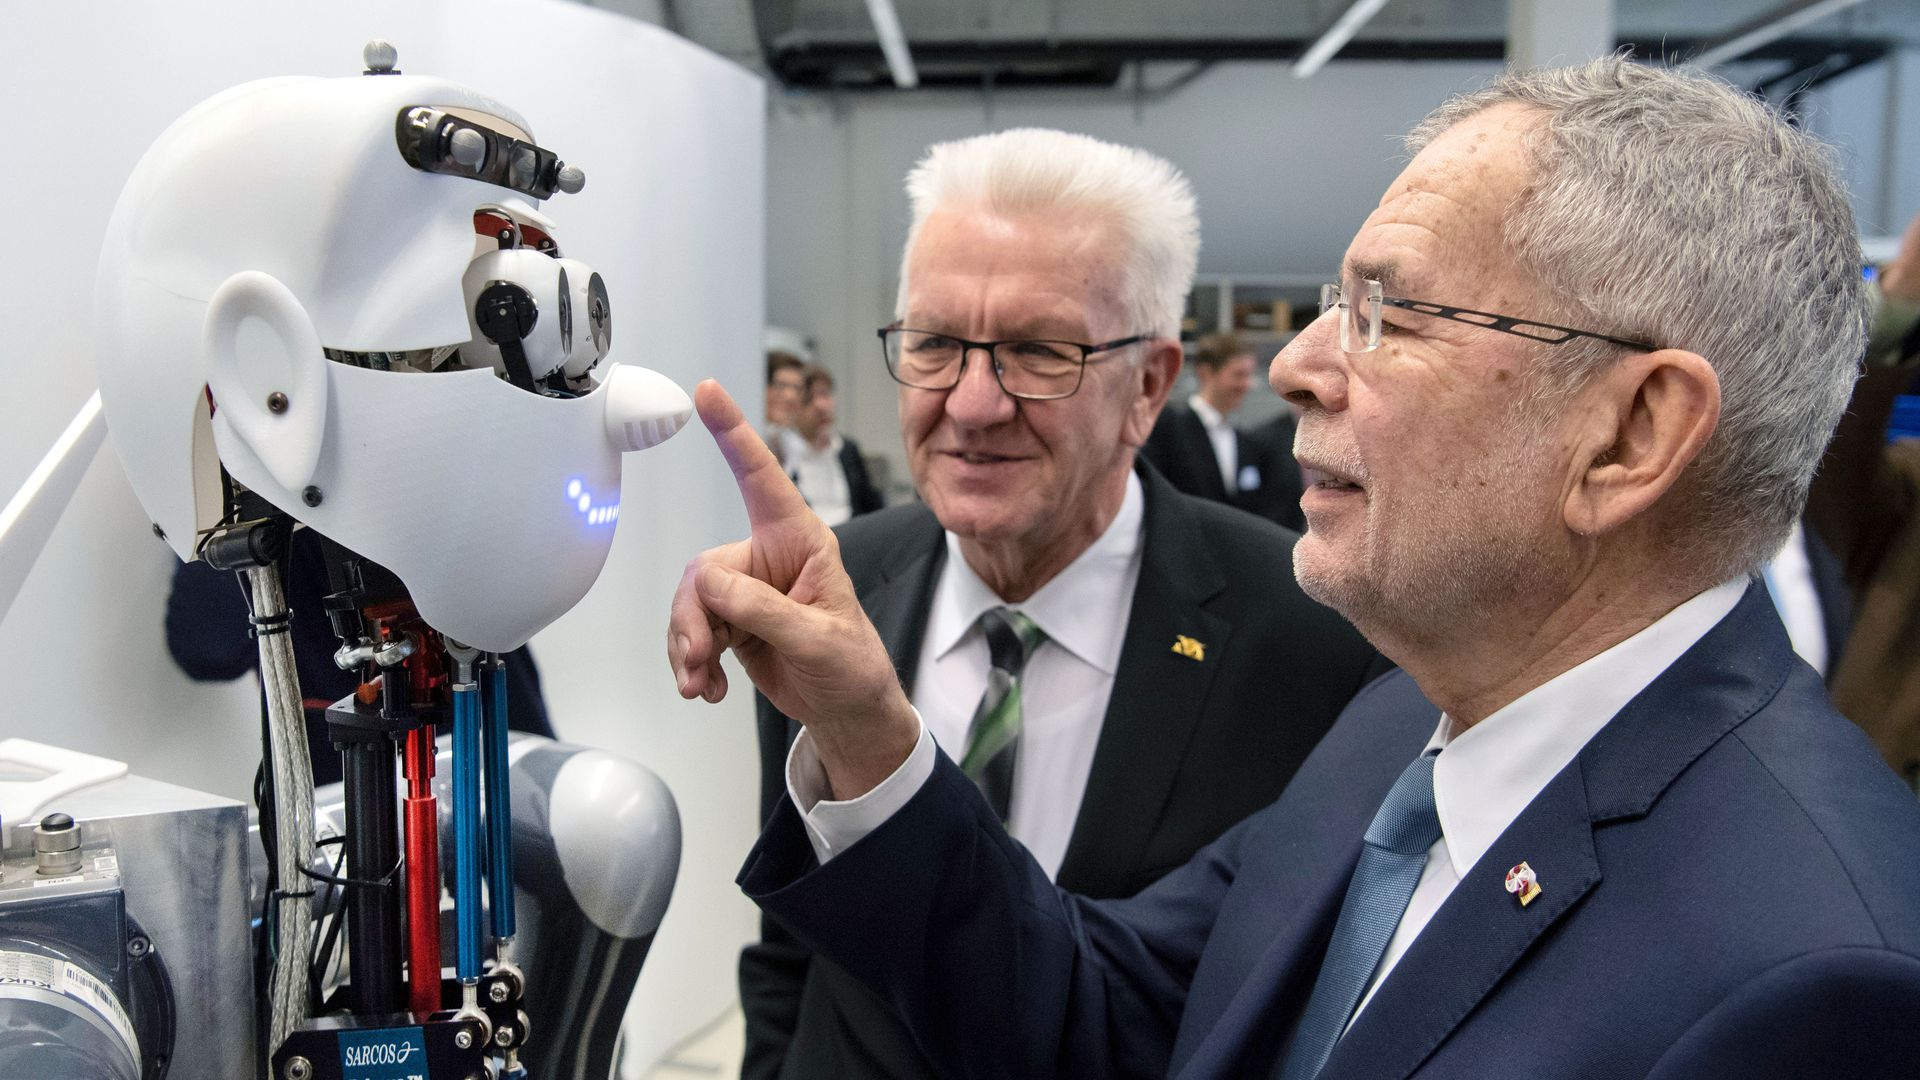 Photo of a man touching a robot's nose as another man looks on